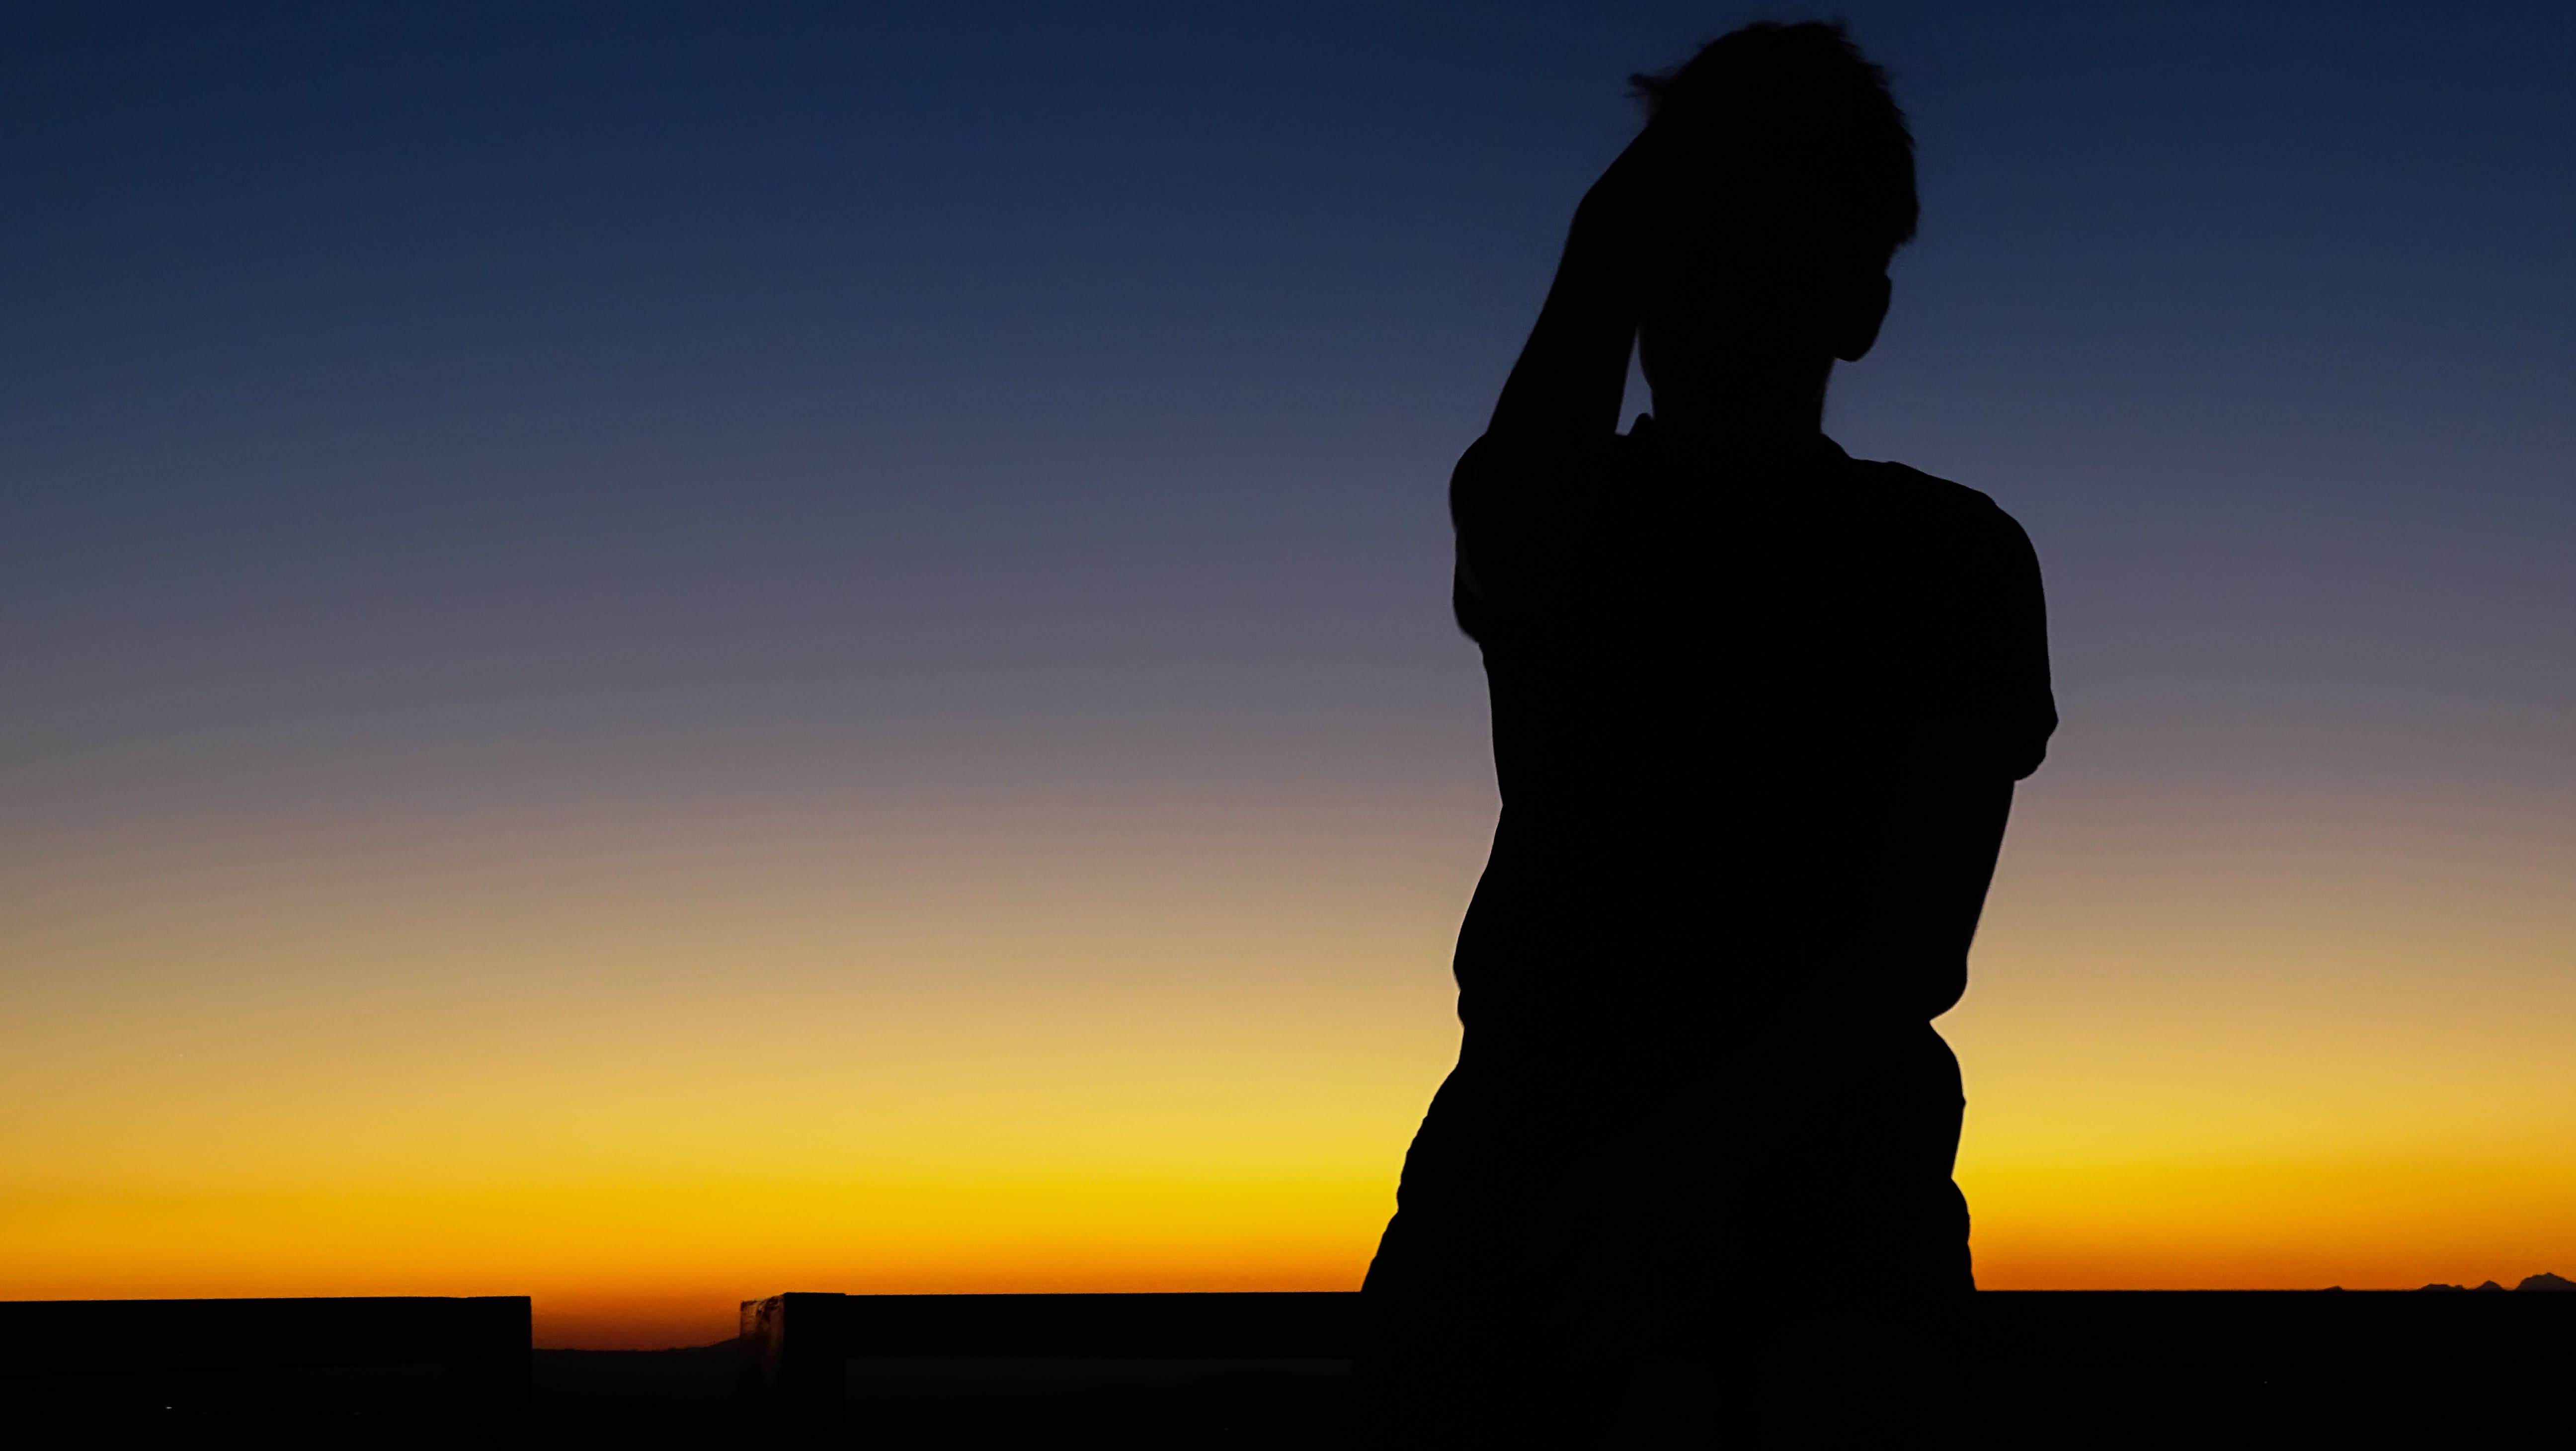 Silhouette Photo of Person